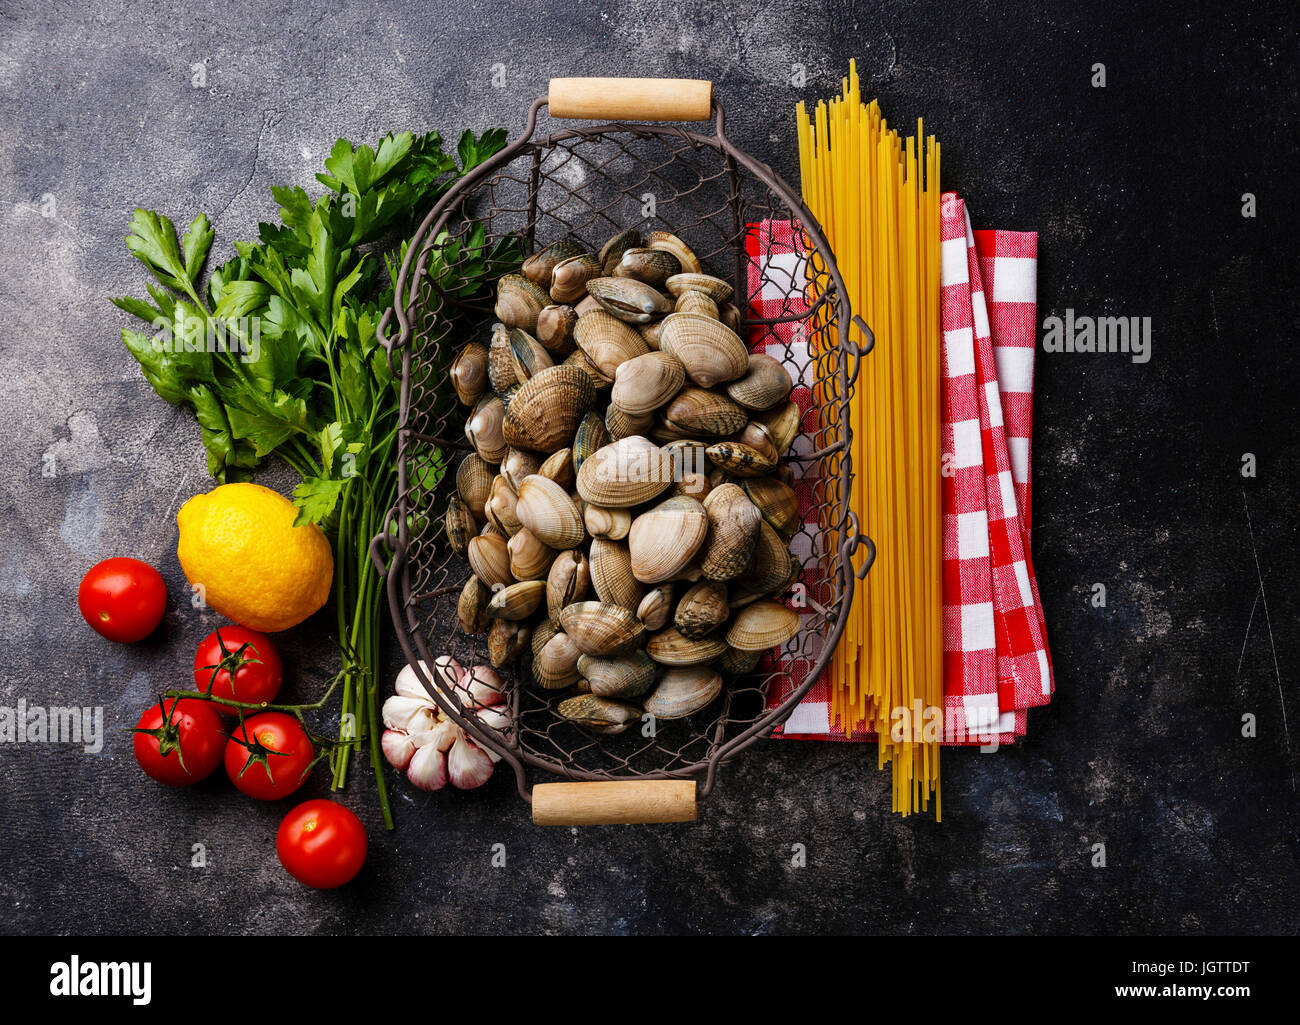 Raw food Ingredients for cooking Spaghetti alle vongole on dark background - Stock Image